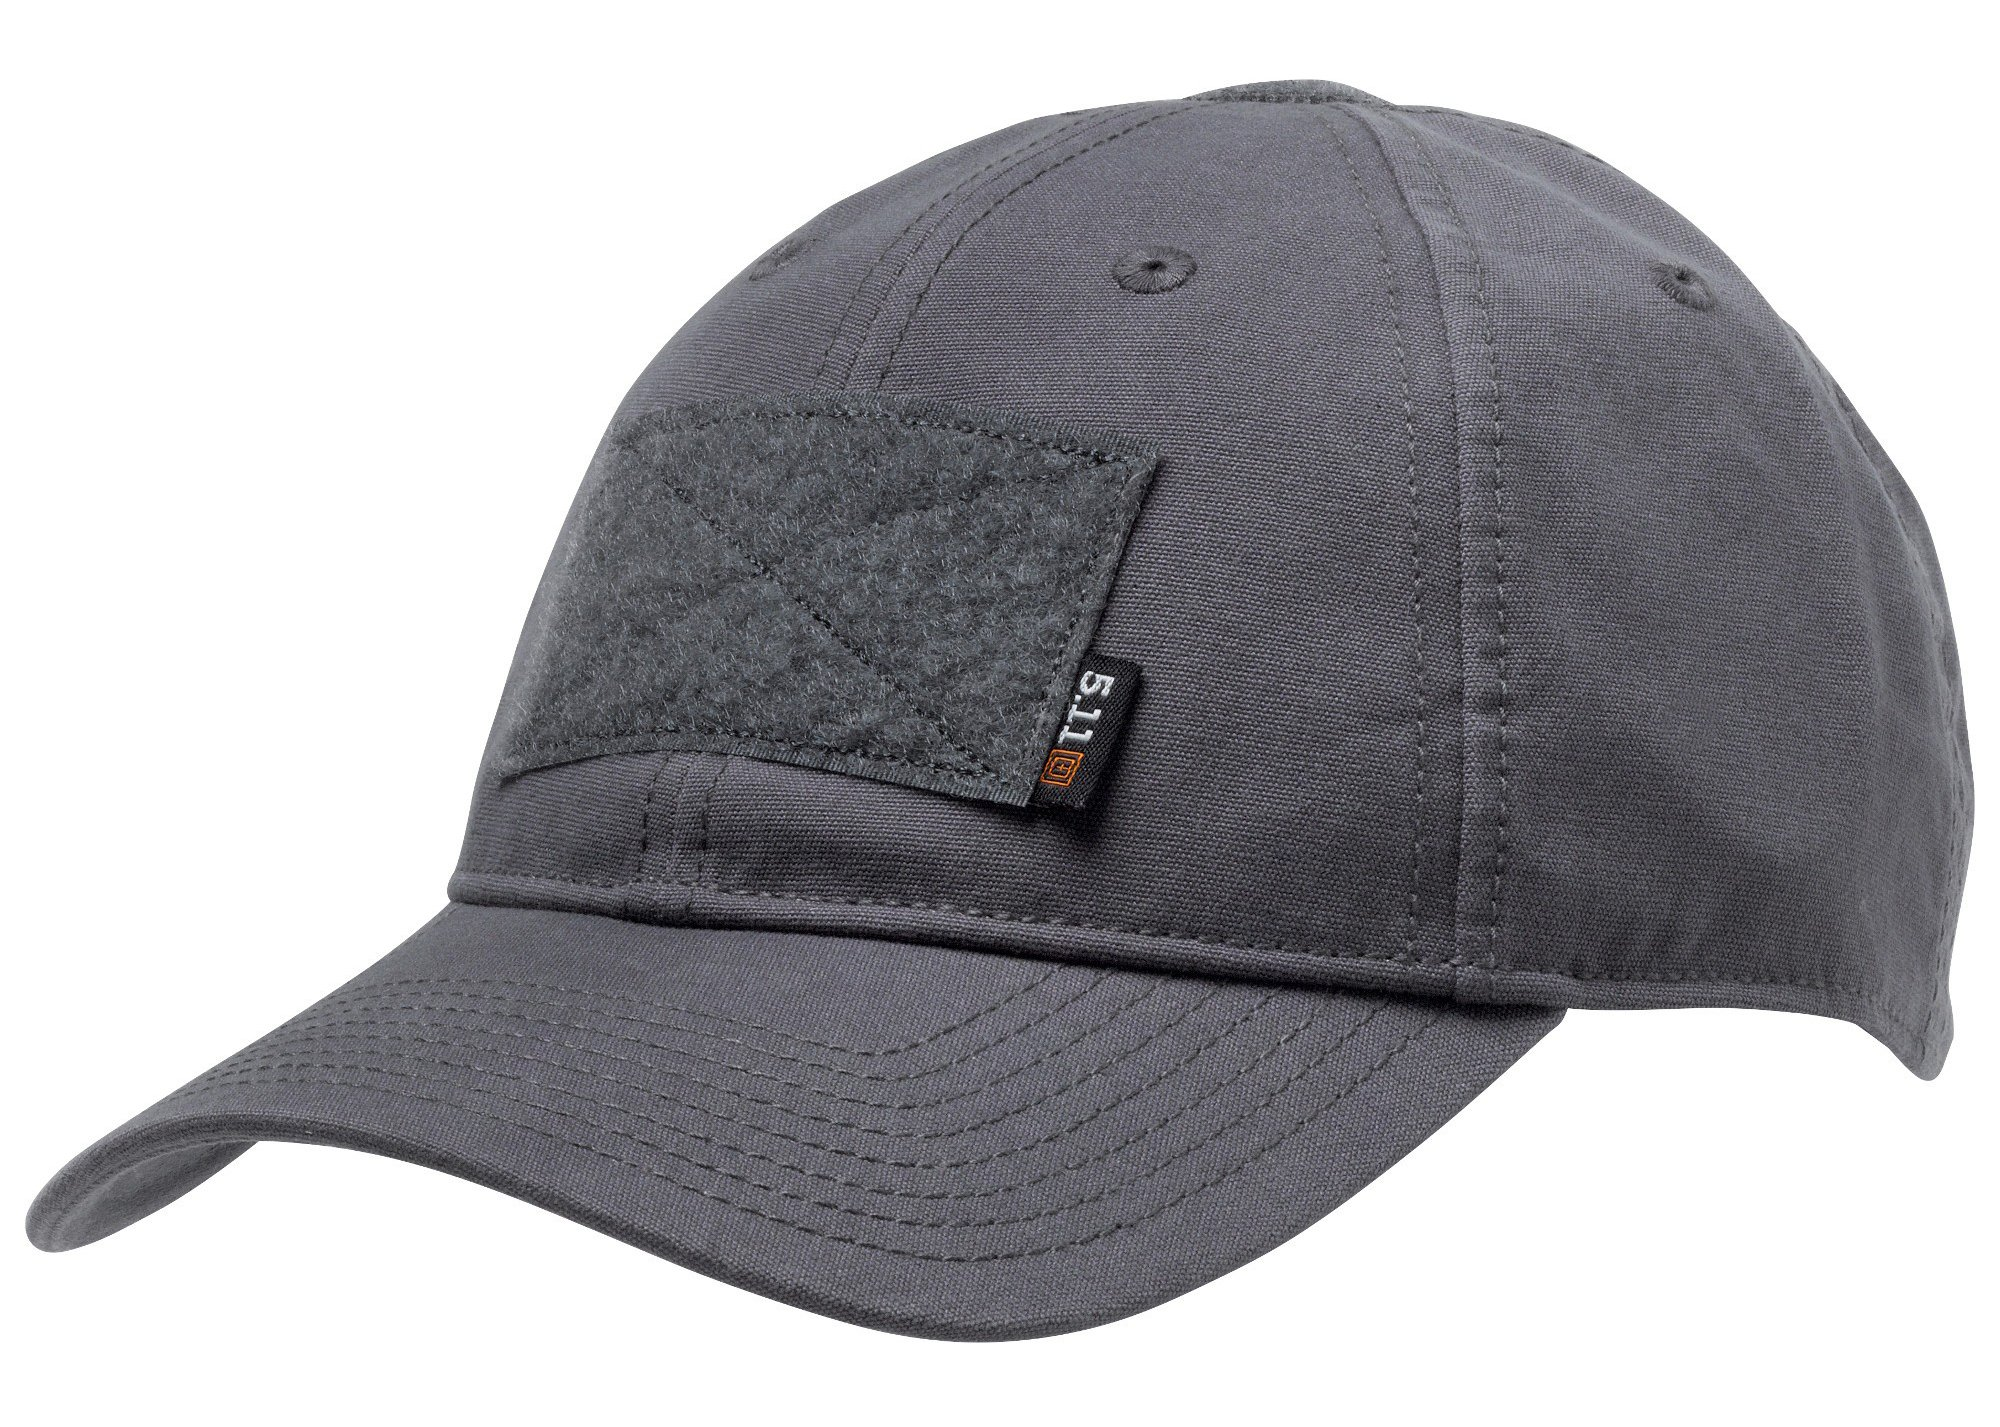 5.11 Tactical Flag Bearer Cap, Storm, One Size